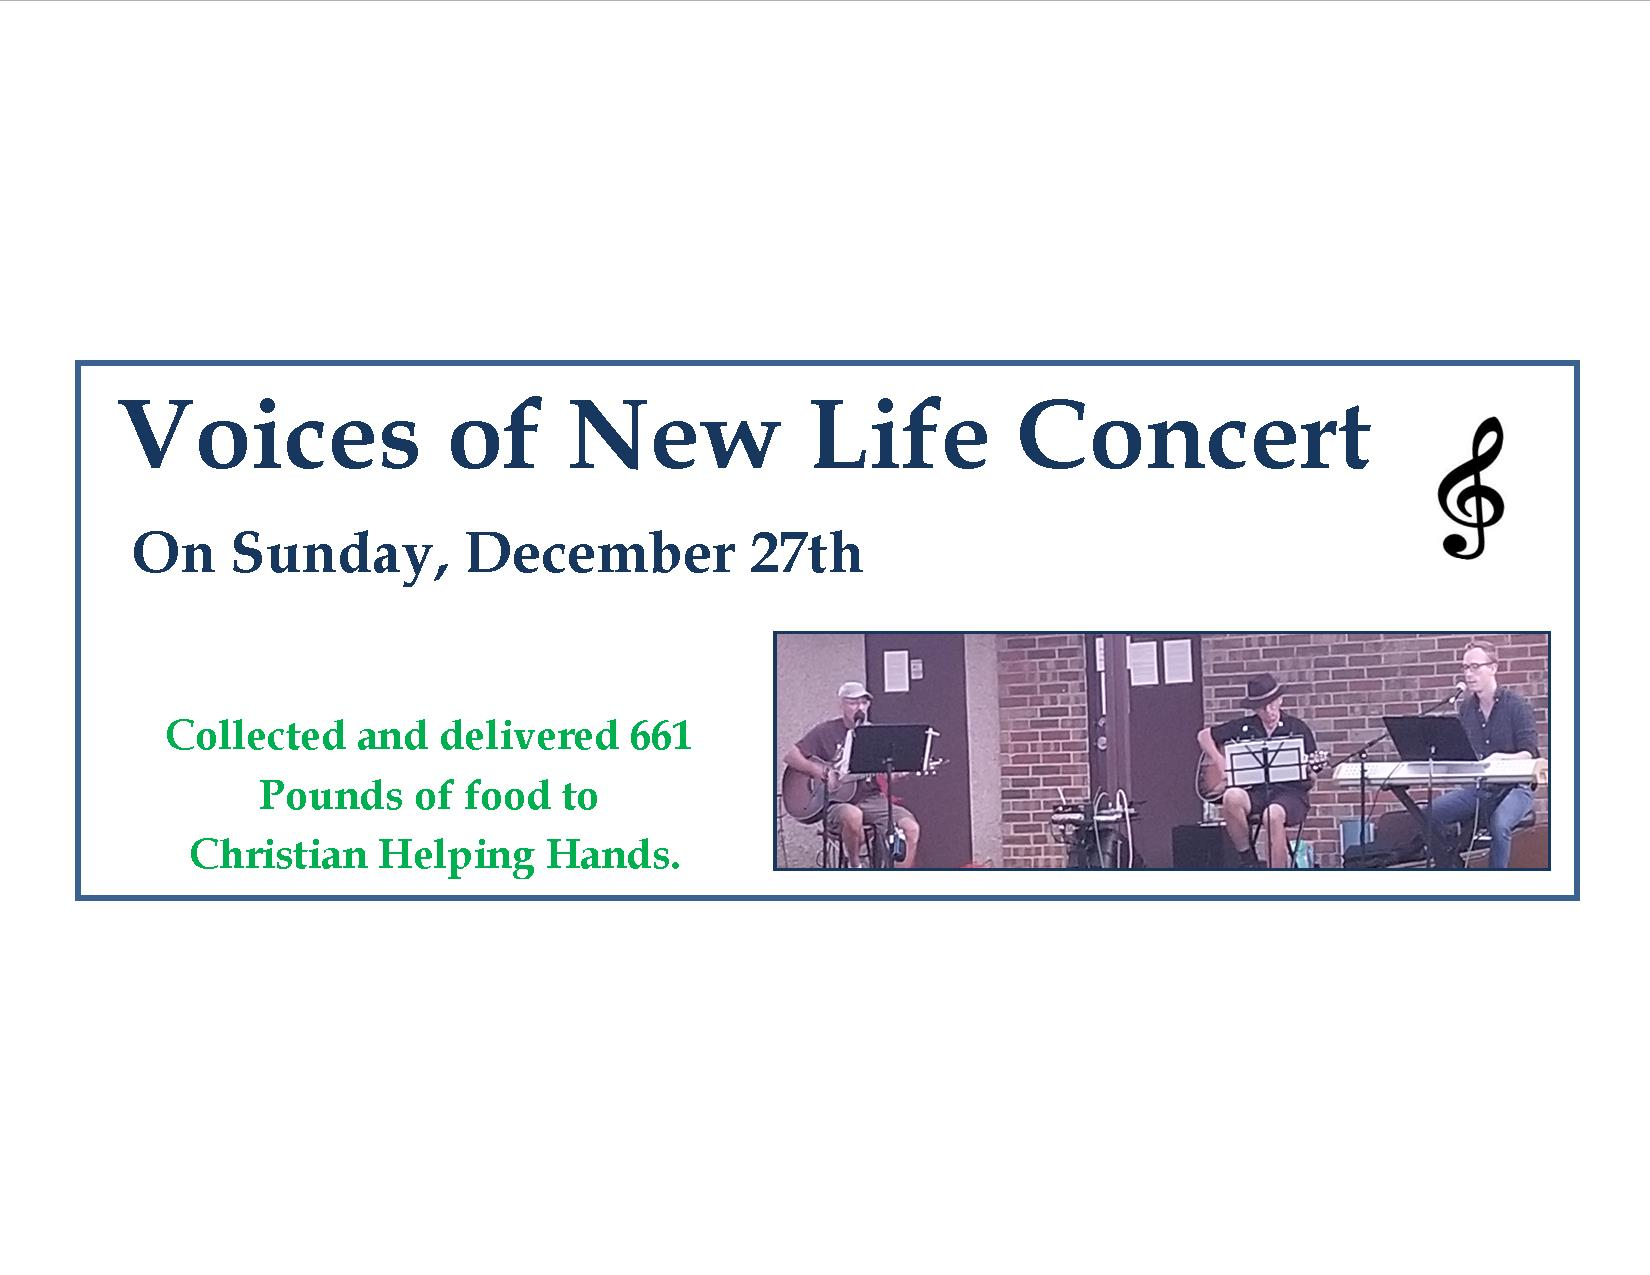 Voices of New Life Concert Dec 27th 2020 results